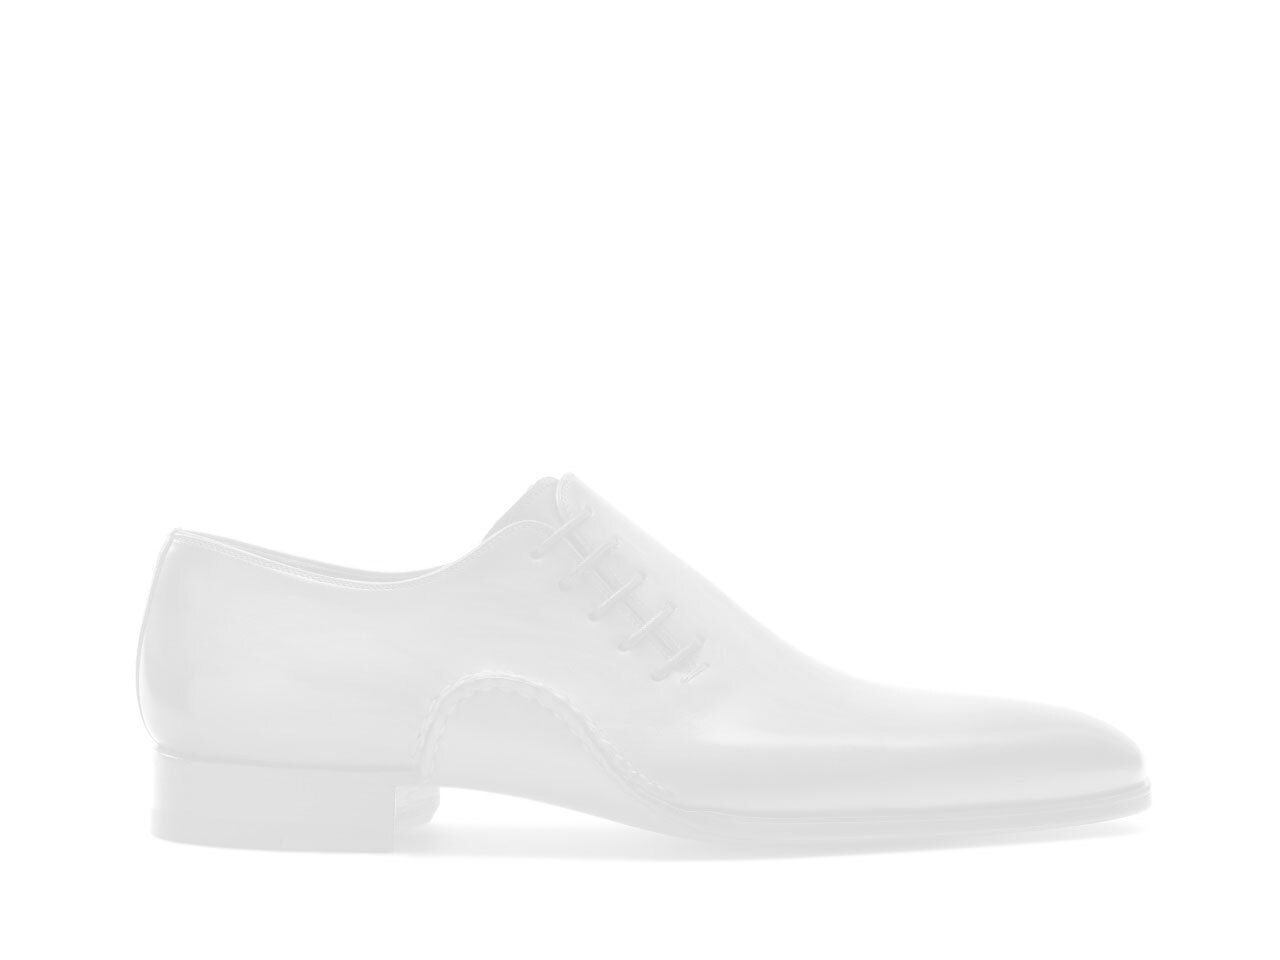 Pair of the Magnanni Como White and Navy Men's Sneakers